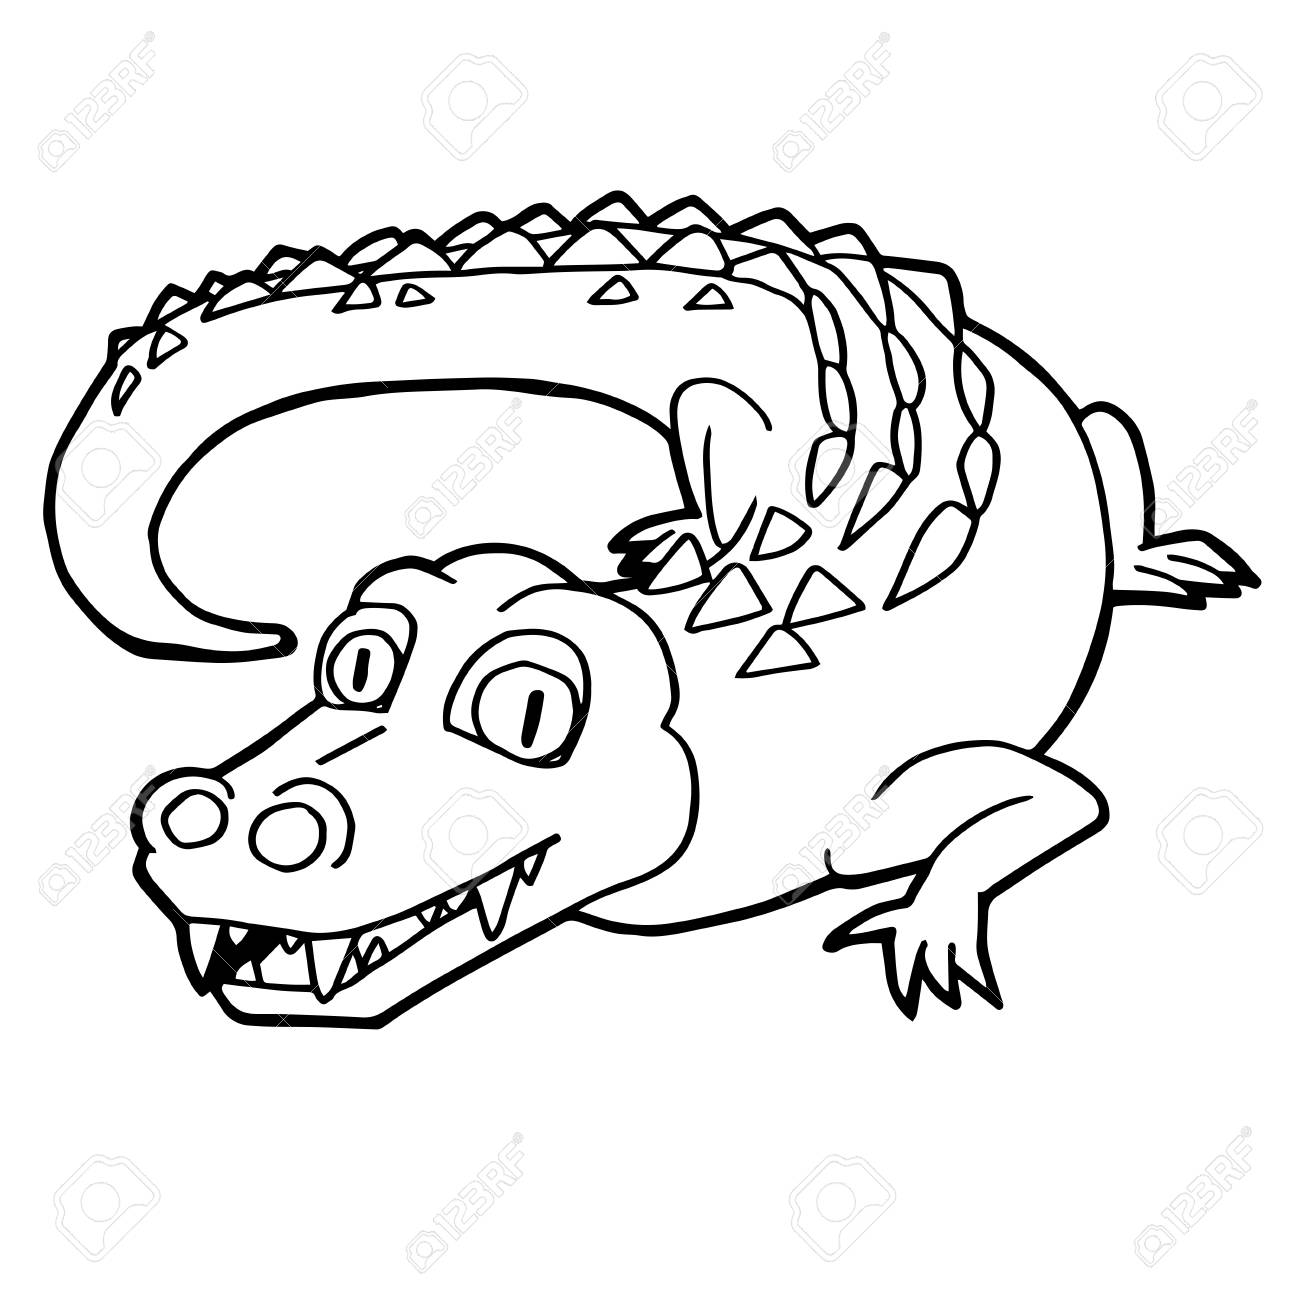 Free Printable Crocodile Coloring Pages For Kids | Coloring pages ... | 1300x1300